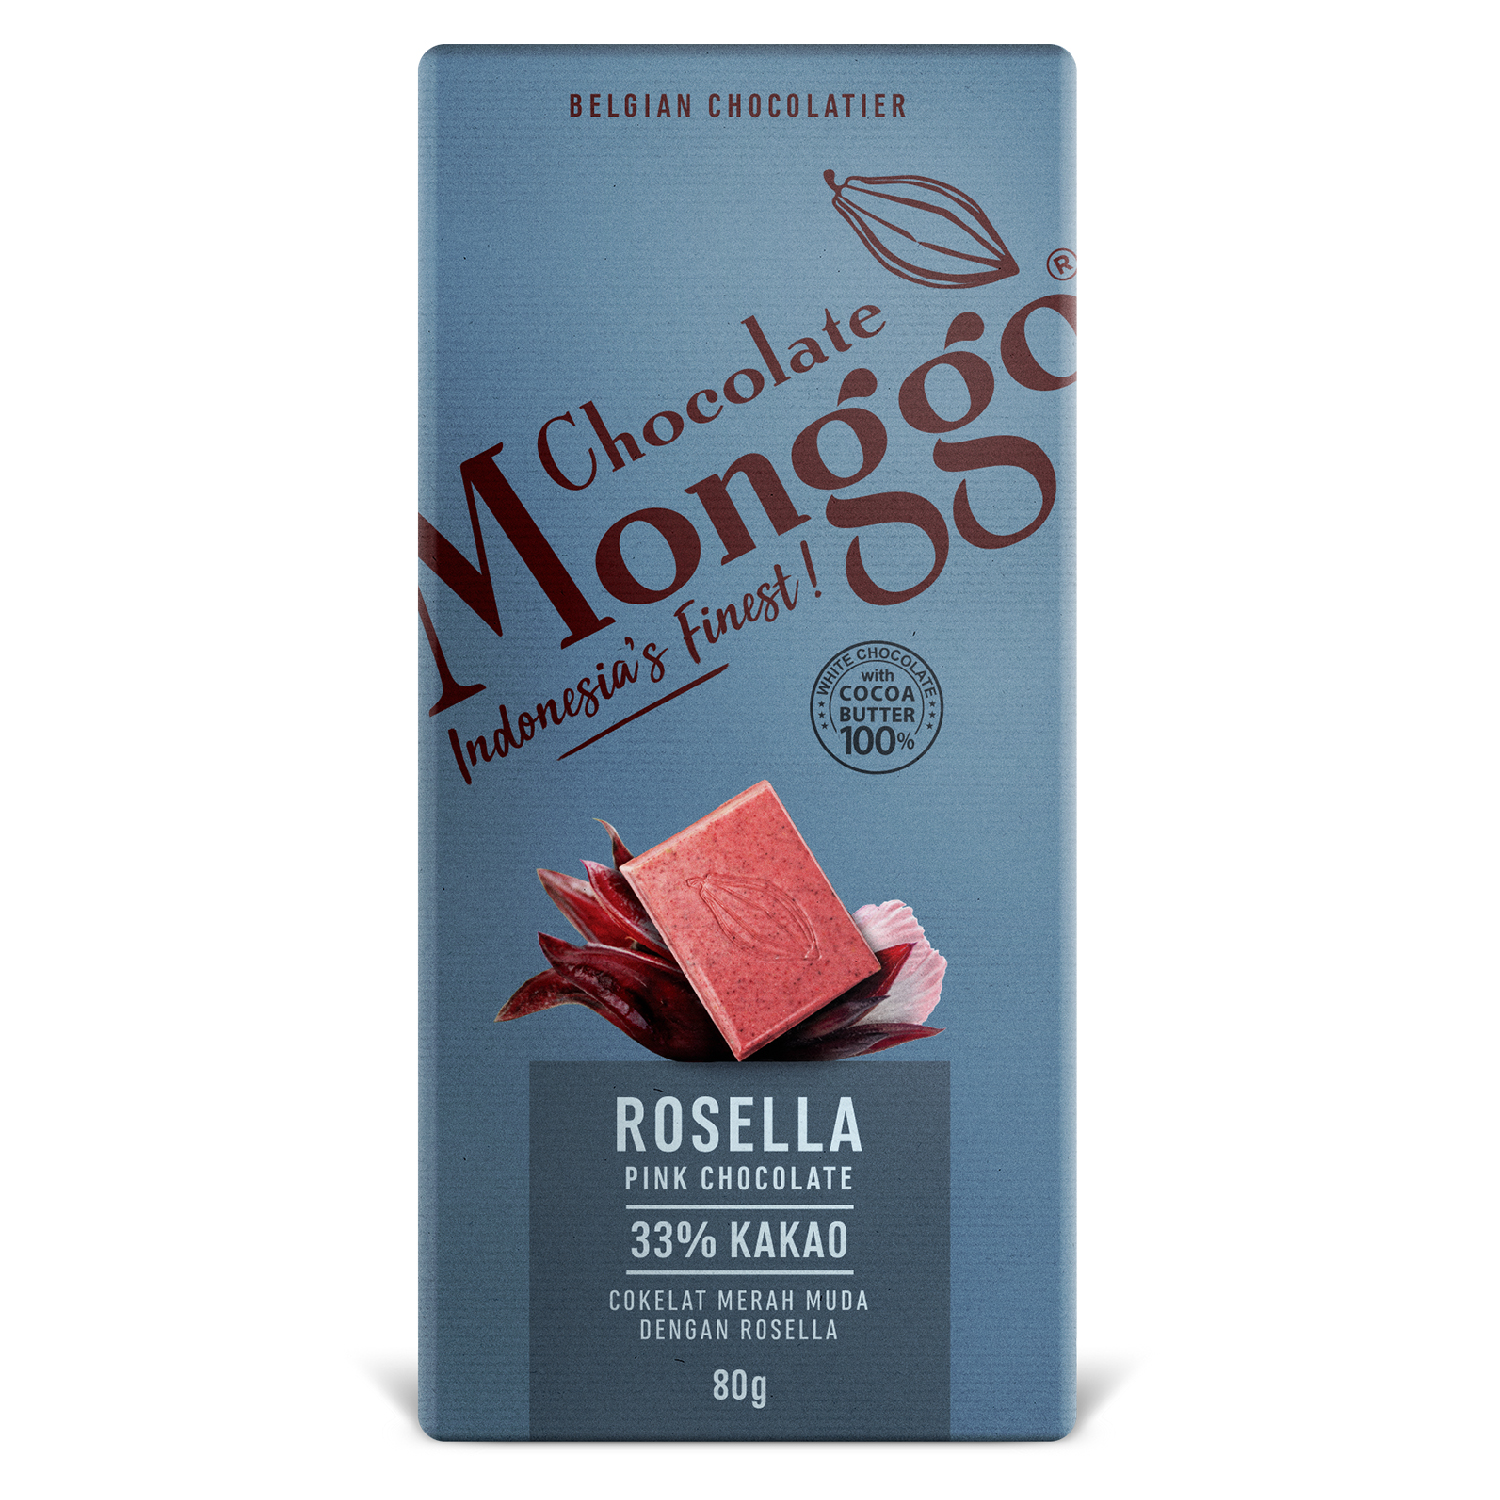 PINK CHOCOLATE TABLET WITH ROSELLA